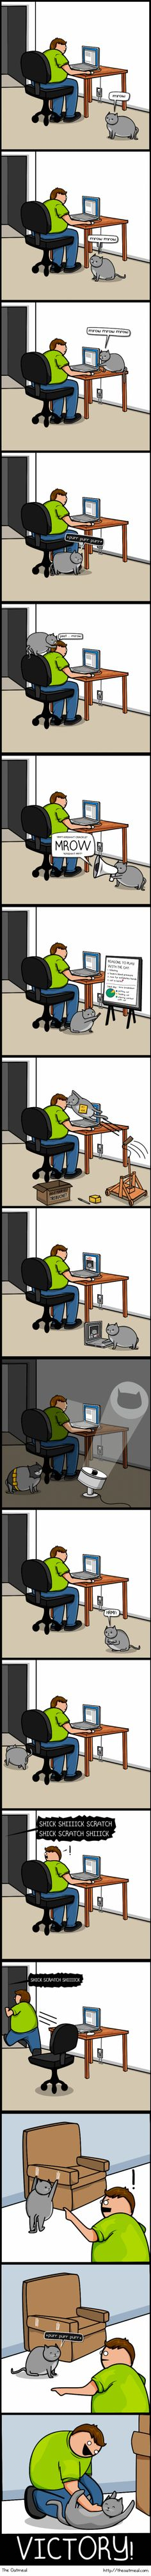 Cat vs internet.  Hilarious and entirely accurate from The Oatmeal